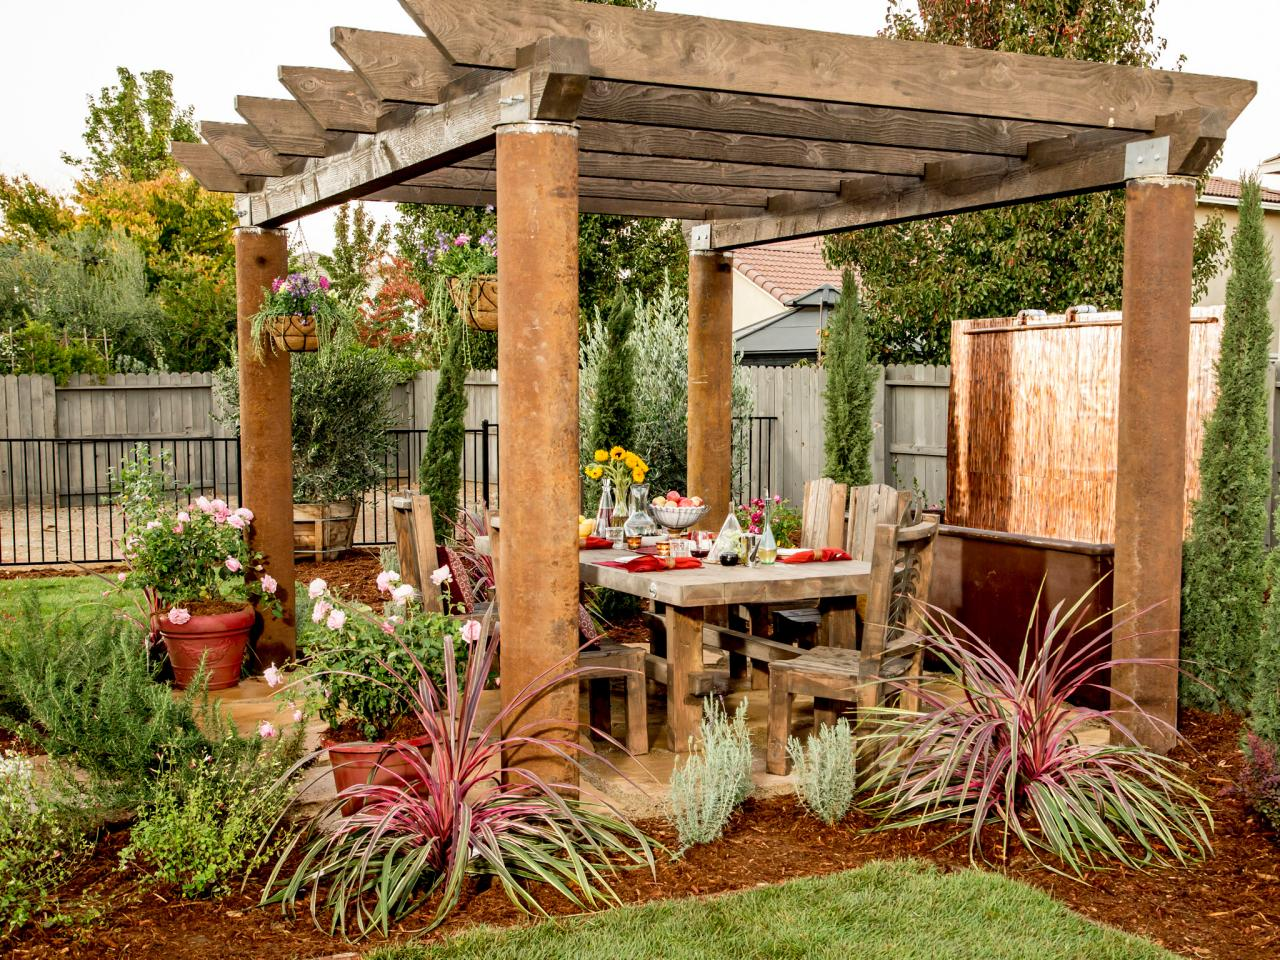 Pergola With Outdoor Dining Area | HGTV on Patio Dining Area Ideas id=21637